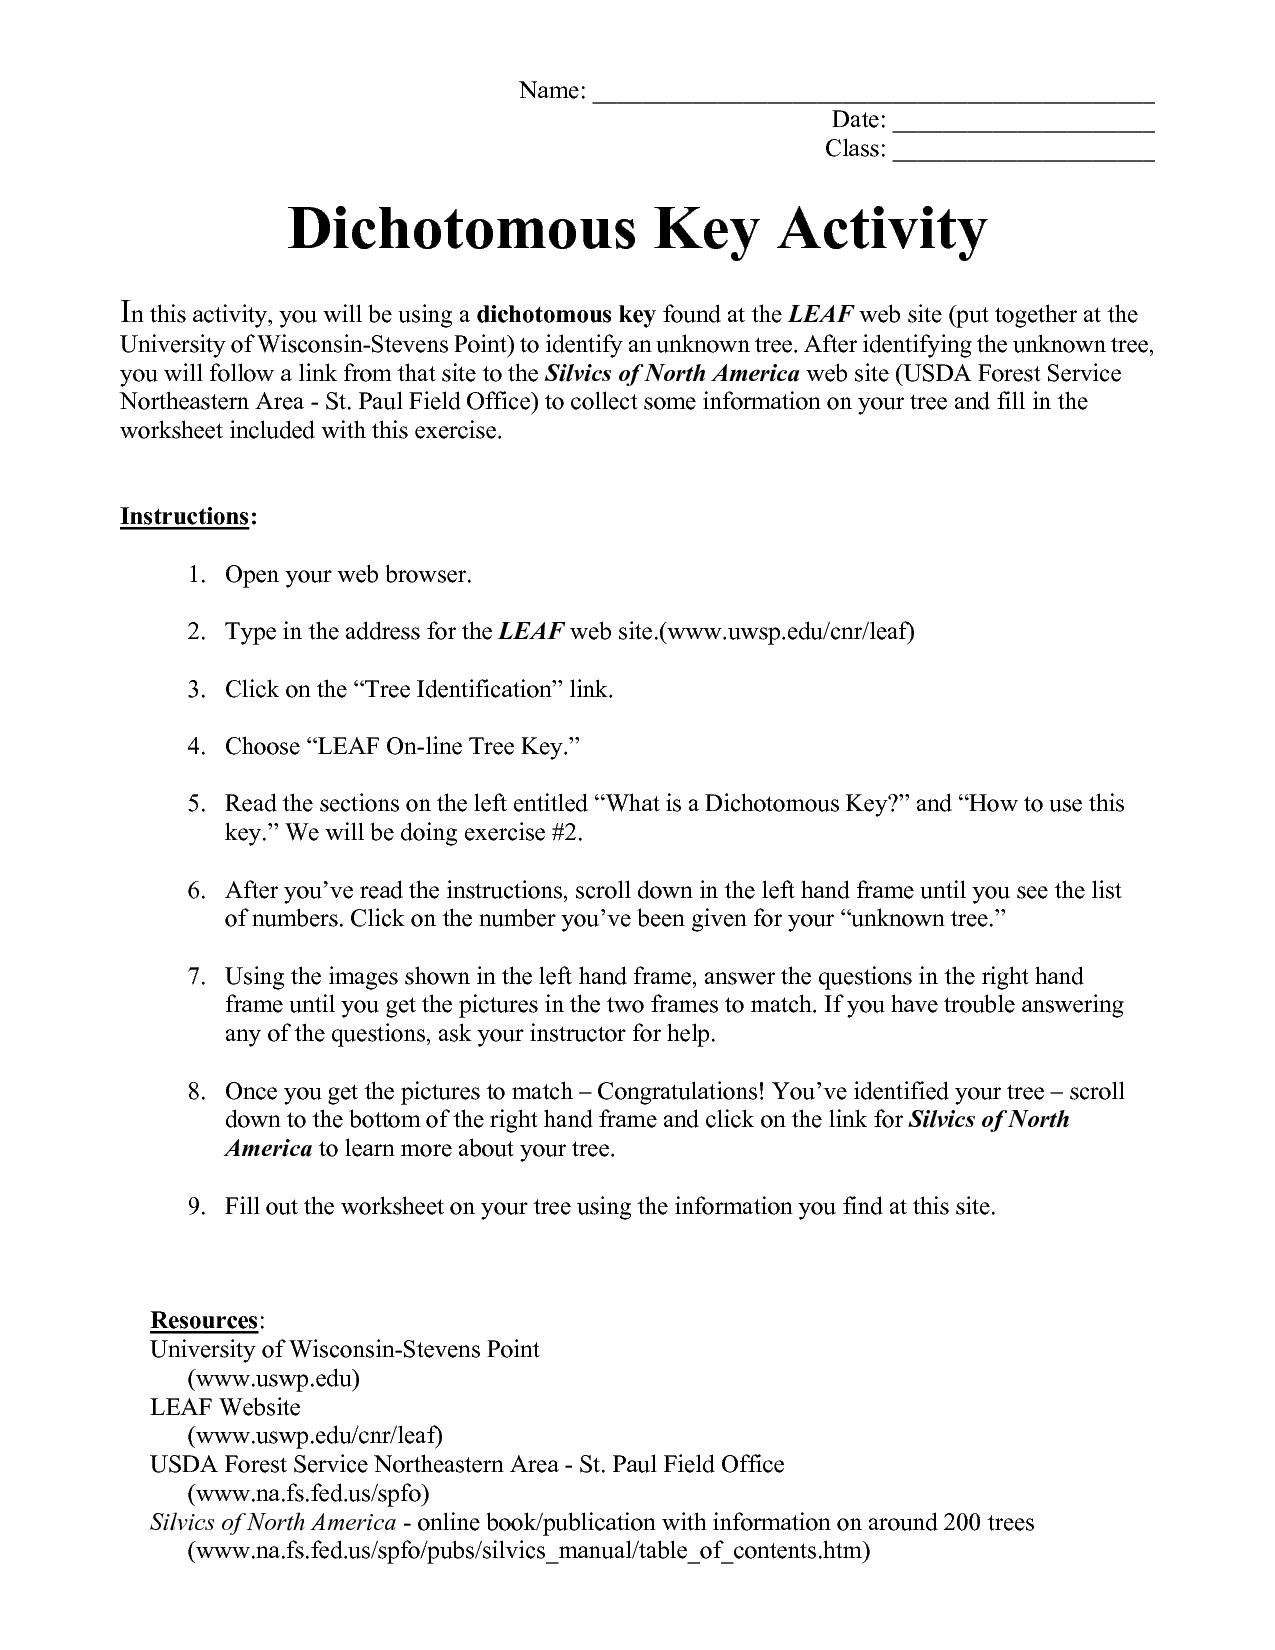 18 Best Images Of Simple Dichotomous Key Worksheet